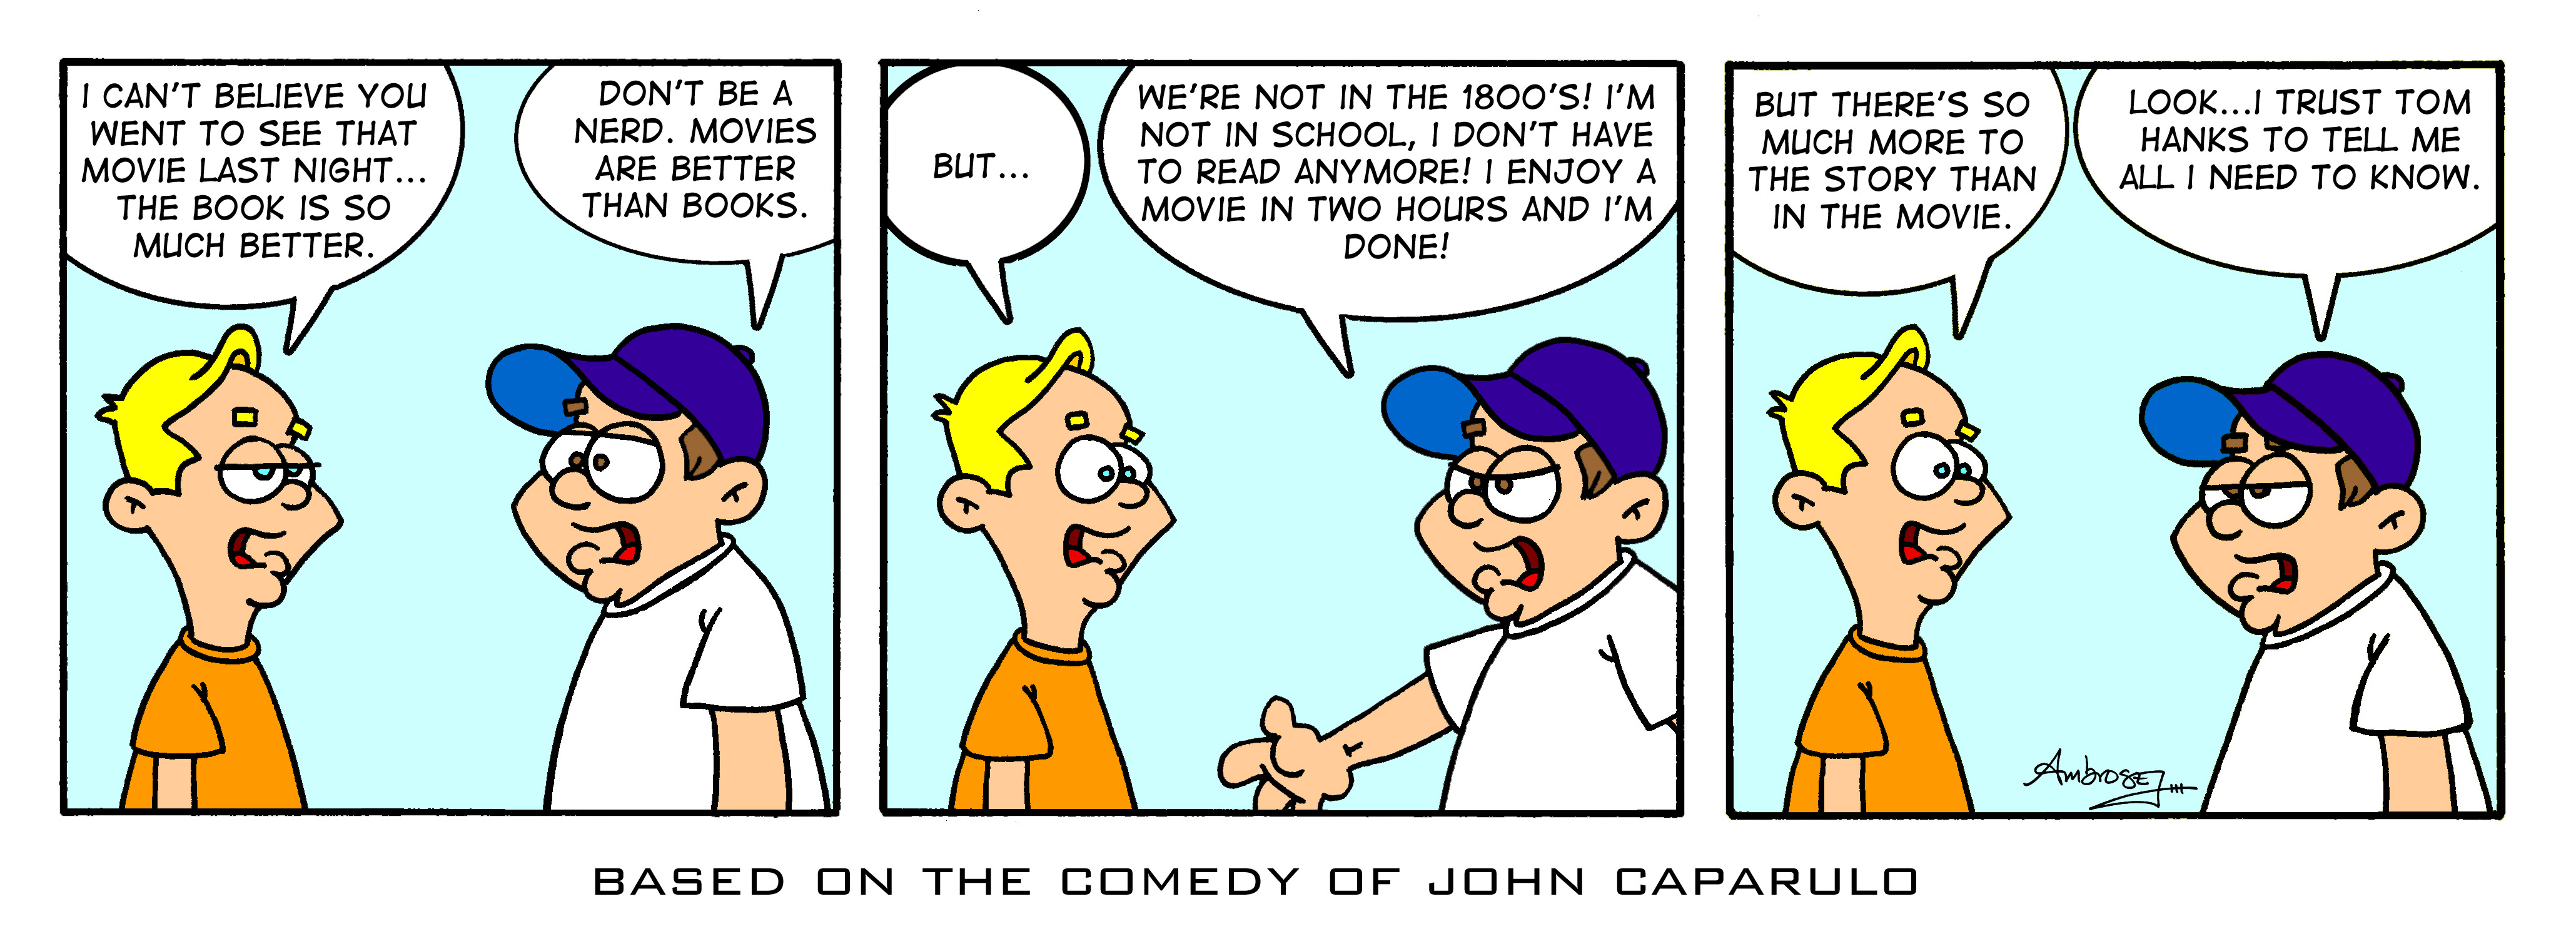 John Caparulo Comic Strip